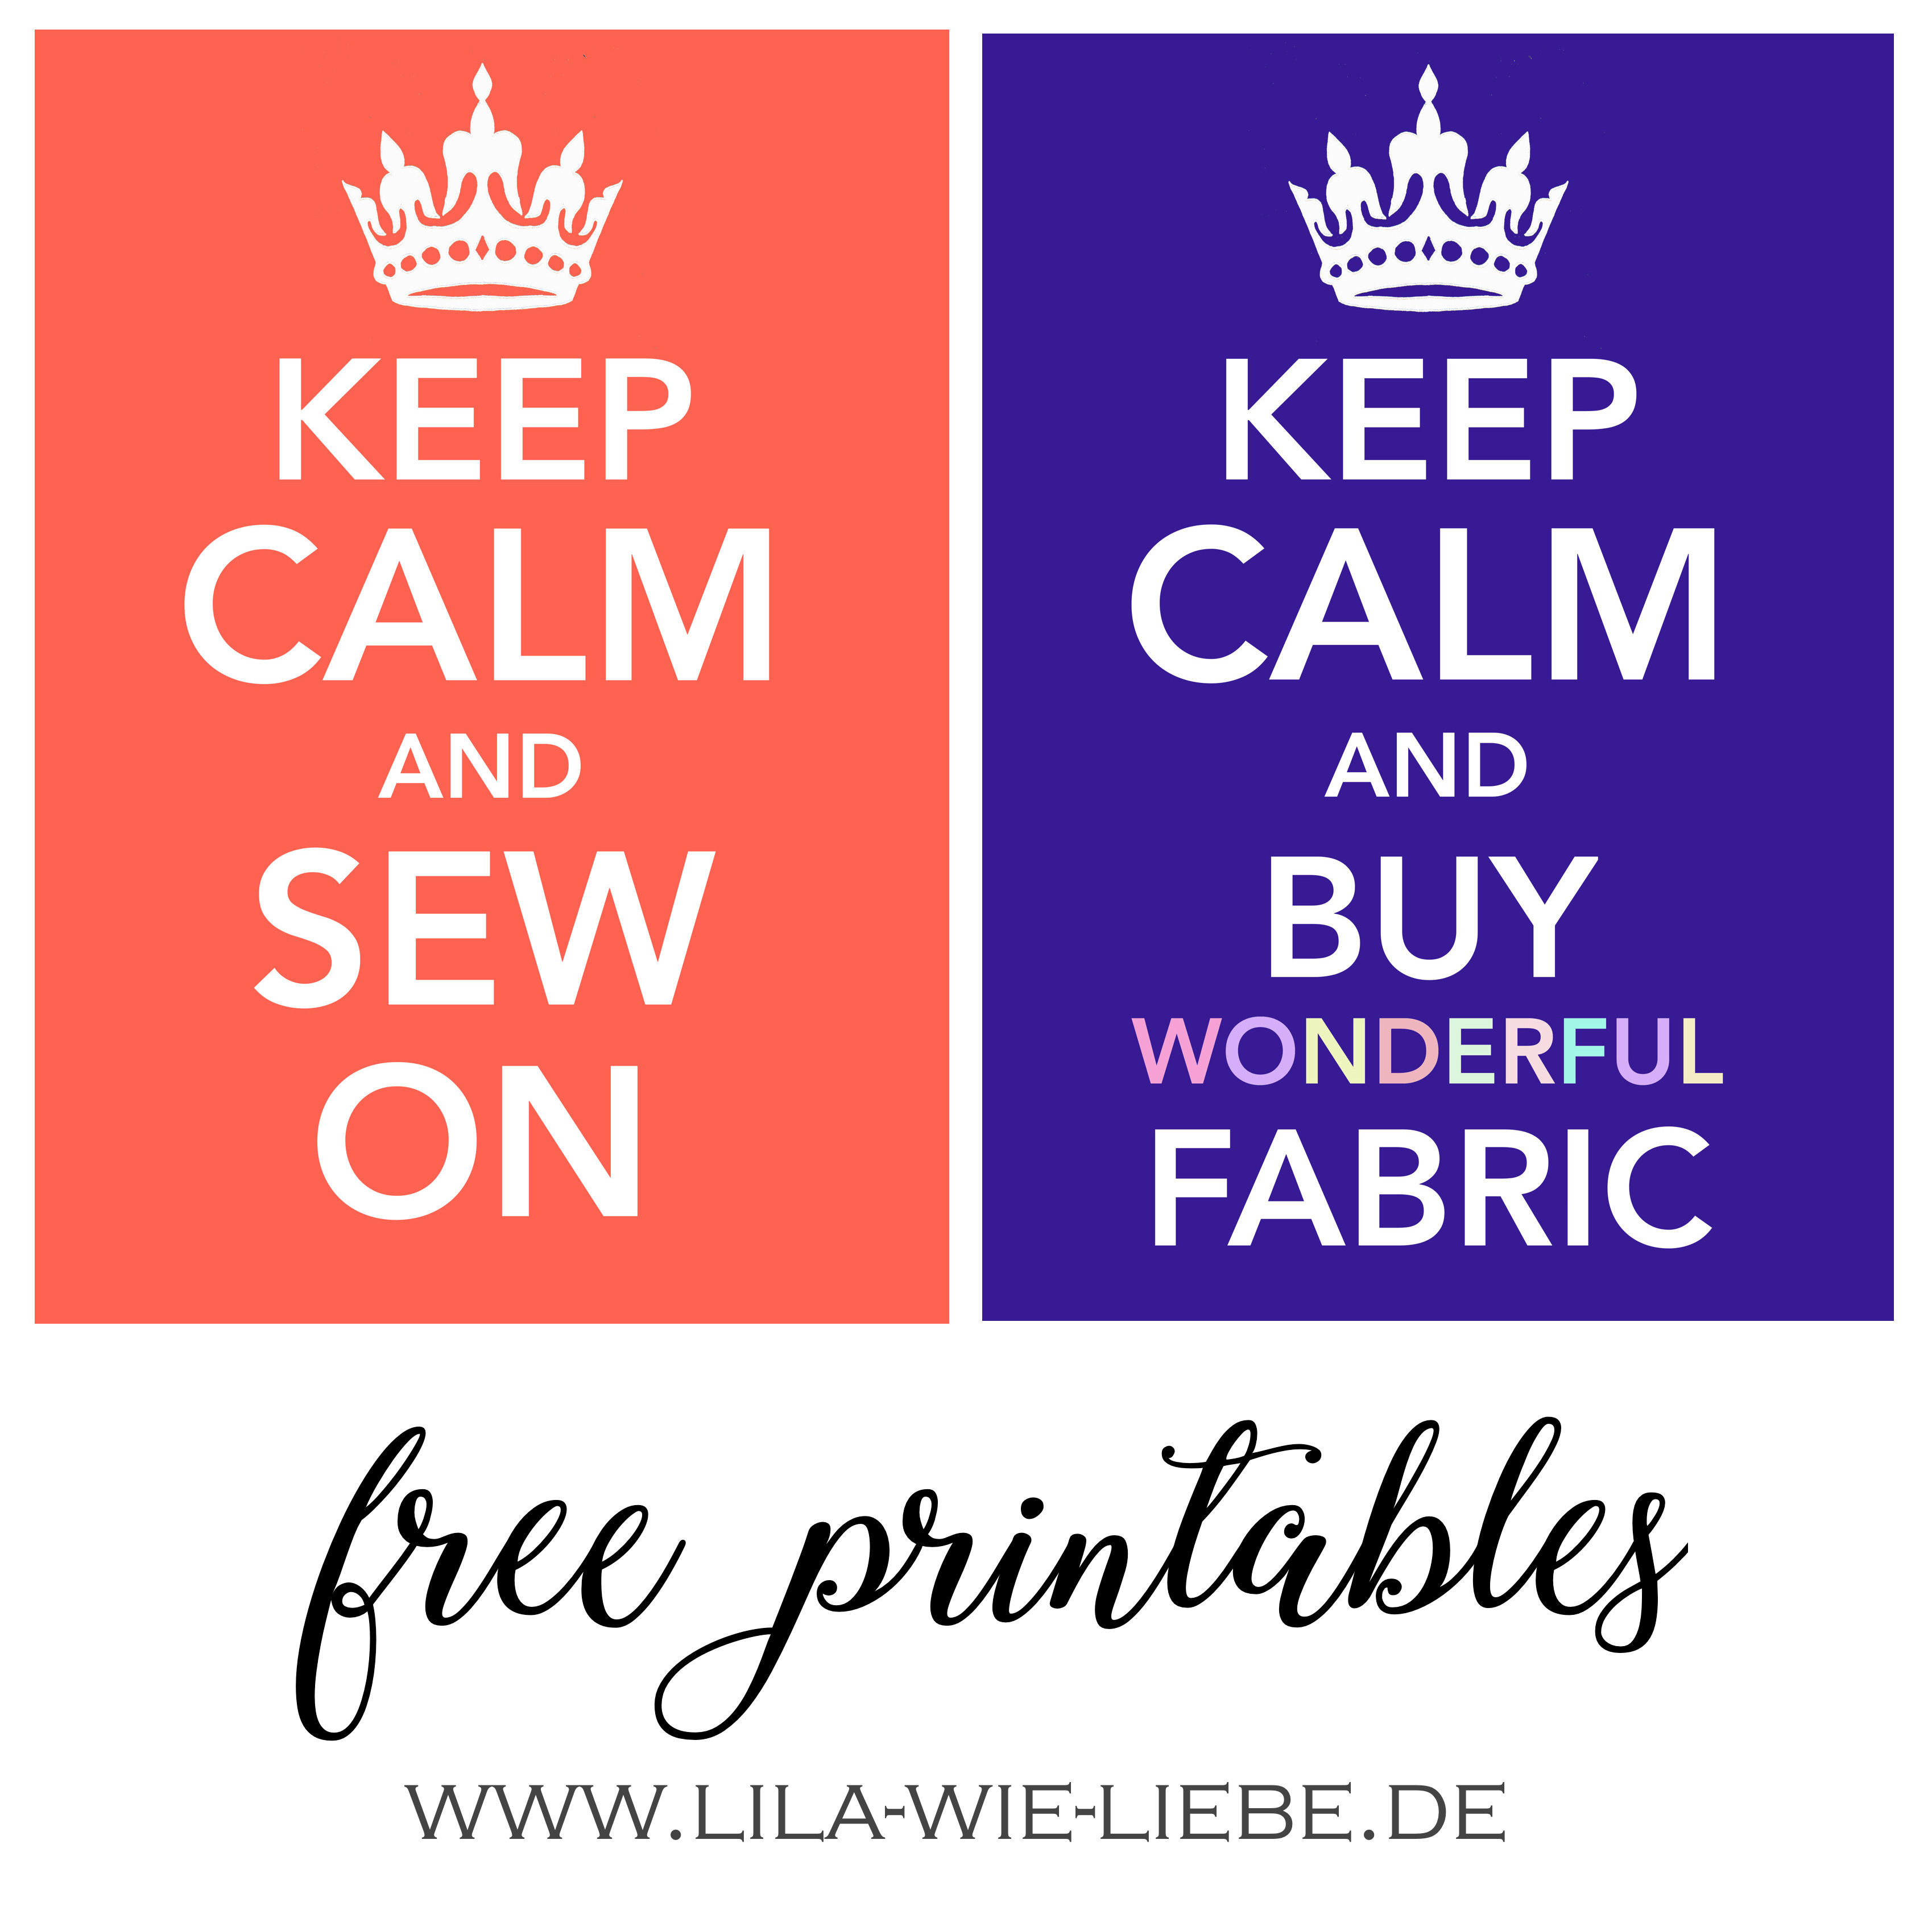 Keep calm and sew on - free printables / free downloads ...